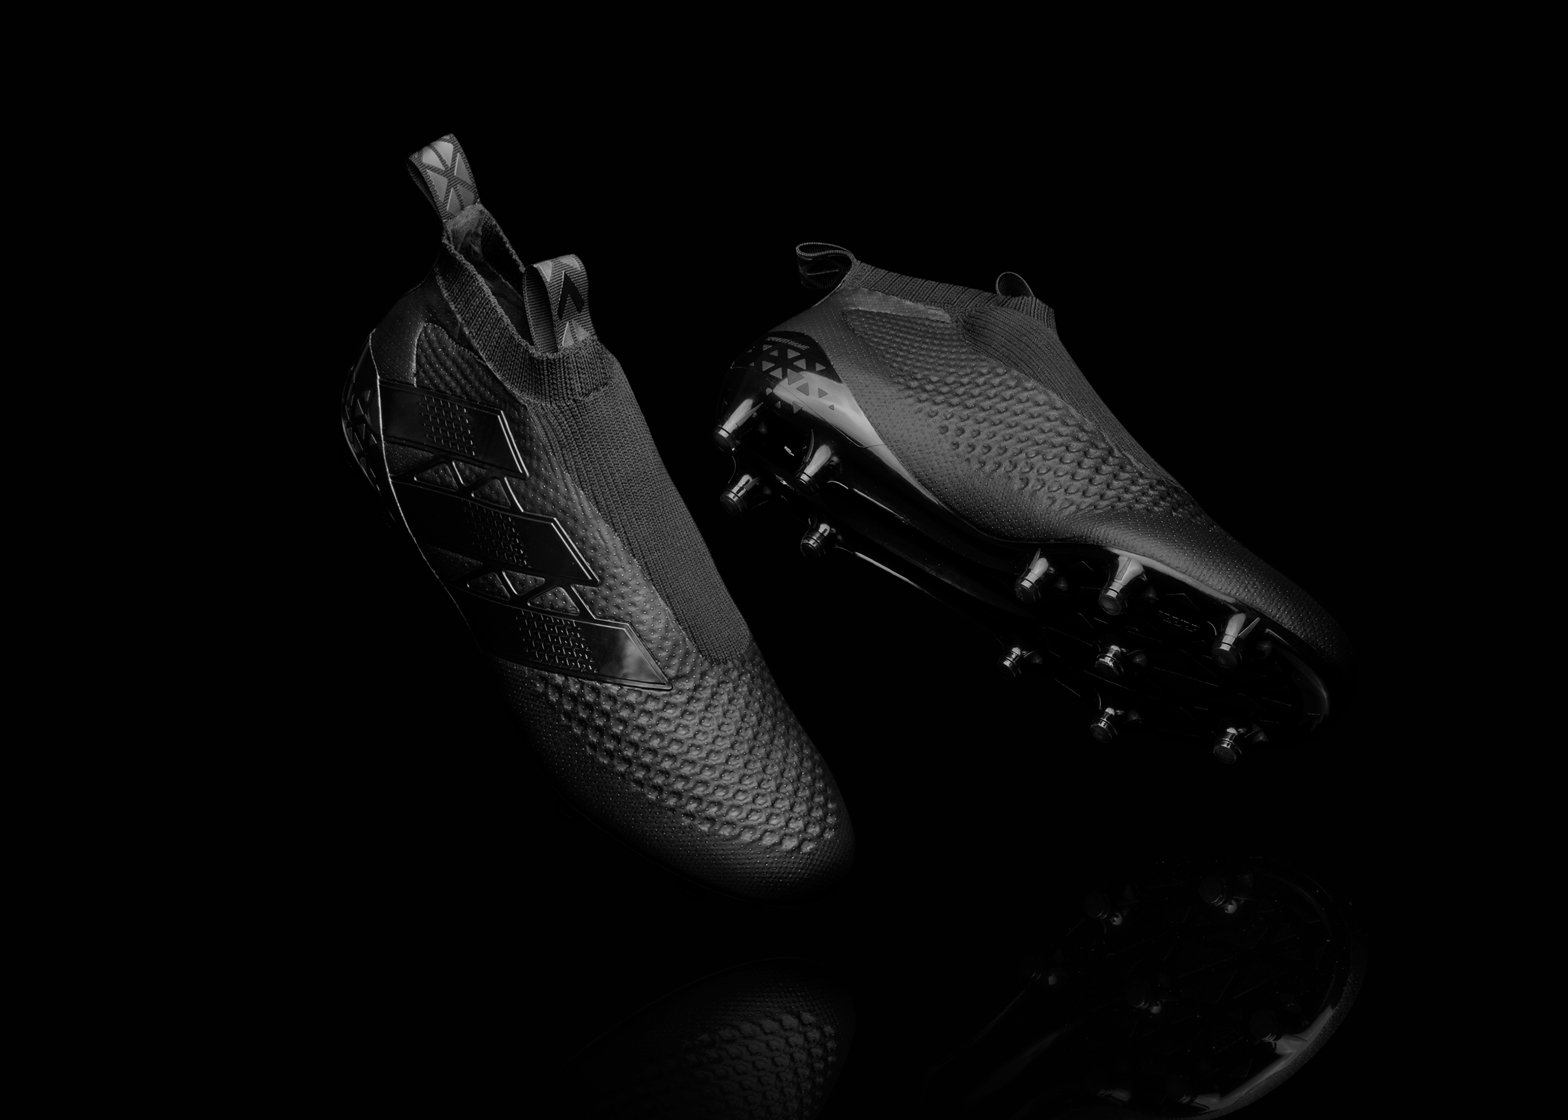 59e9e023d Adidas to release laceless knitted football boots in 2016